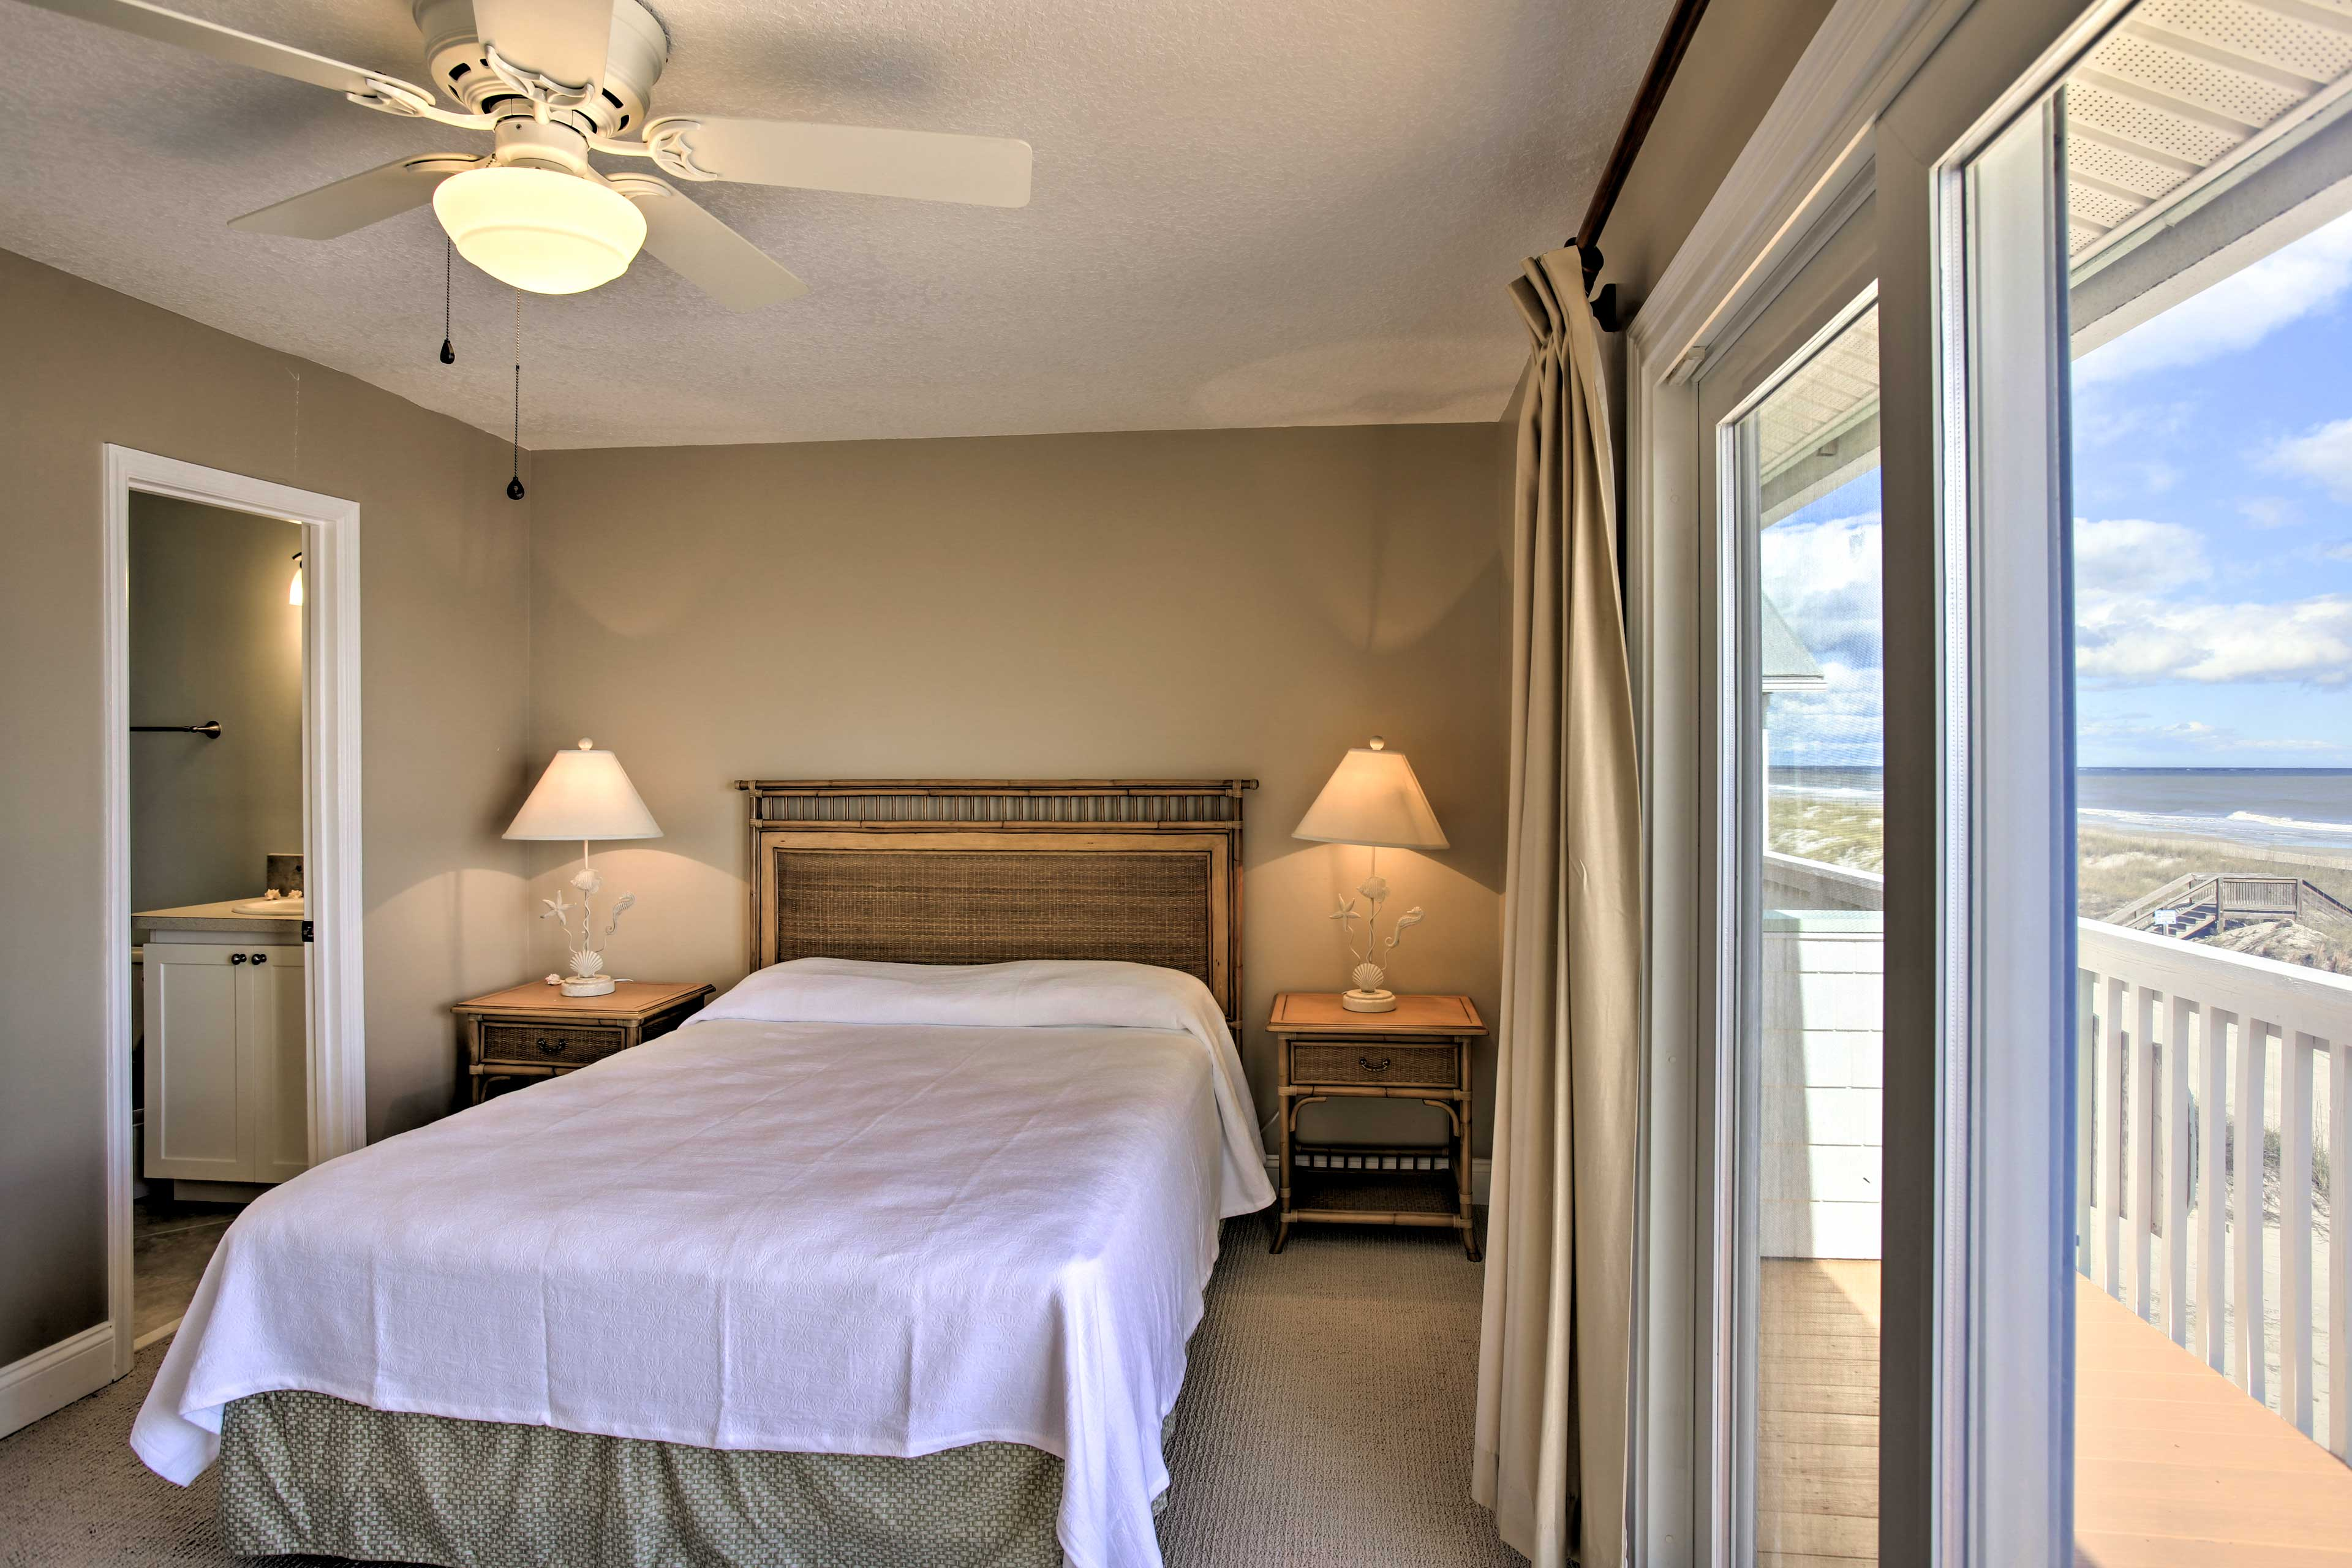 Wake up to ocean views from the master bedroom's balcony!